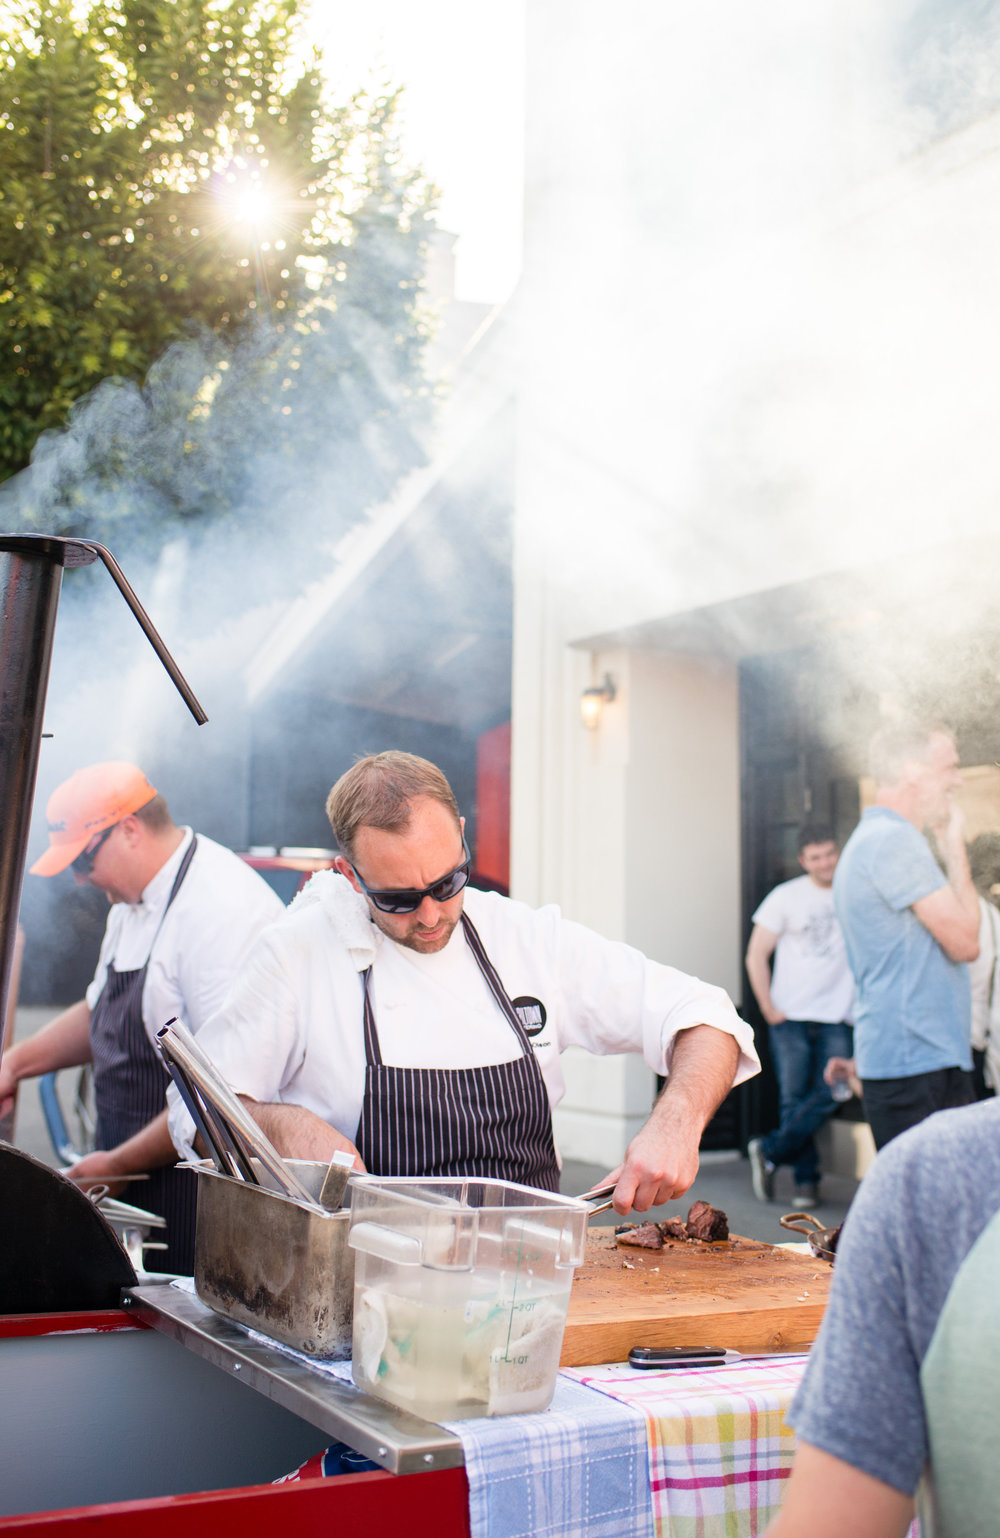 RAILTOWN REVIVES POPULAR SATURDAY 'TAILGATE'BARBECUE EVENTS THIS AUGUST - July 25, 2018After a two-year hiatus, Railtown Cafe's perennially sold-out Saturday al-fresco-style Tailgate Barbecues are back for two exclusive events at their original location in the heart of Vancouver's historic Railtown District on August 18 and 25 from 4 to 9 p.m.Railtown Chefs and Co-Owners Dan Olson and Tyler Day will fire up their custom-built, 12-foot smoker/barbecue barrel to heap plates high with mouthwatering, slow-smoked brisket and pork shoulder and beer-brined chicken and brats, as well as a choice of made-from-scratch sides. Tickets for the Railtown Tailgate Barbecue events on August 18 and August 25 are available for $29 per person ($19 vegetarian) plus tax, both online at railtowncafe.ca/events and onsite. All tickets purchased online in advance include a complimentary drink voucher (up to $6 value).